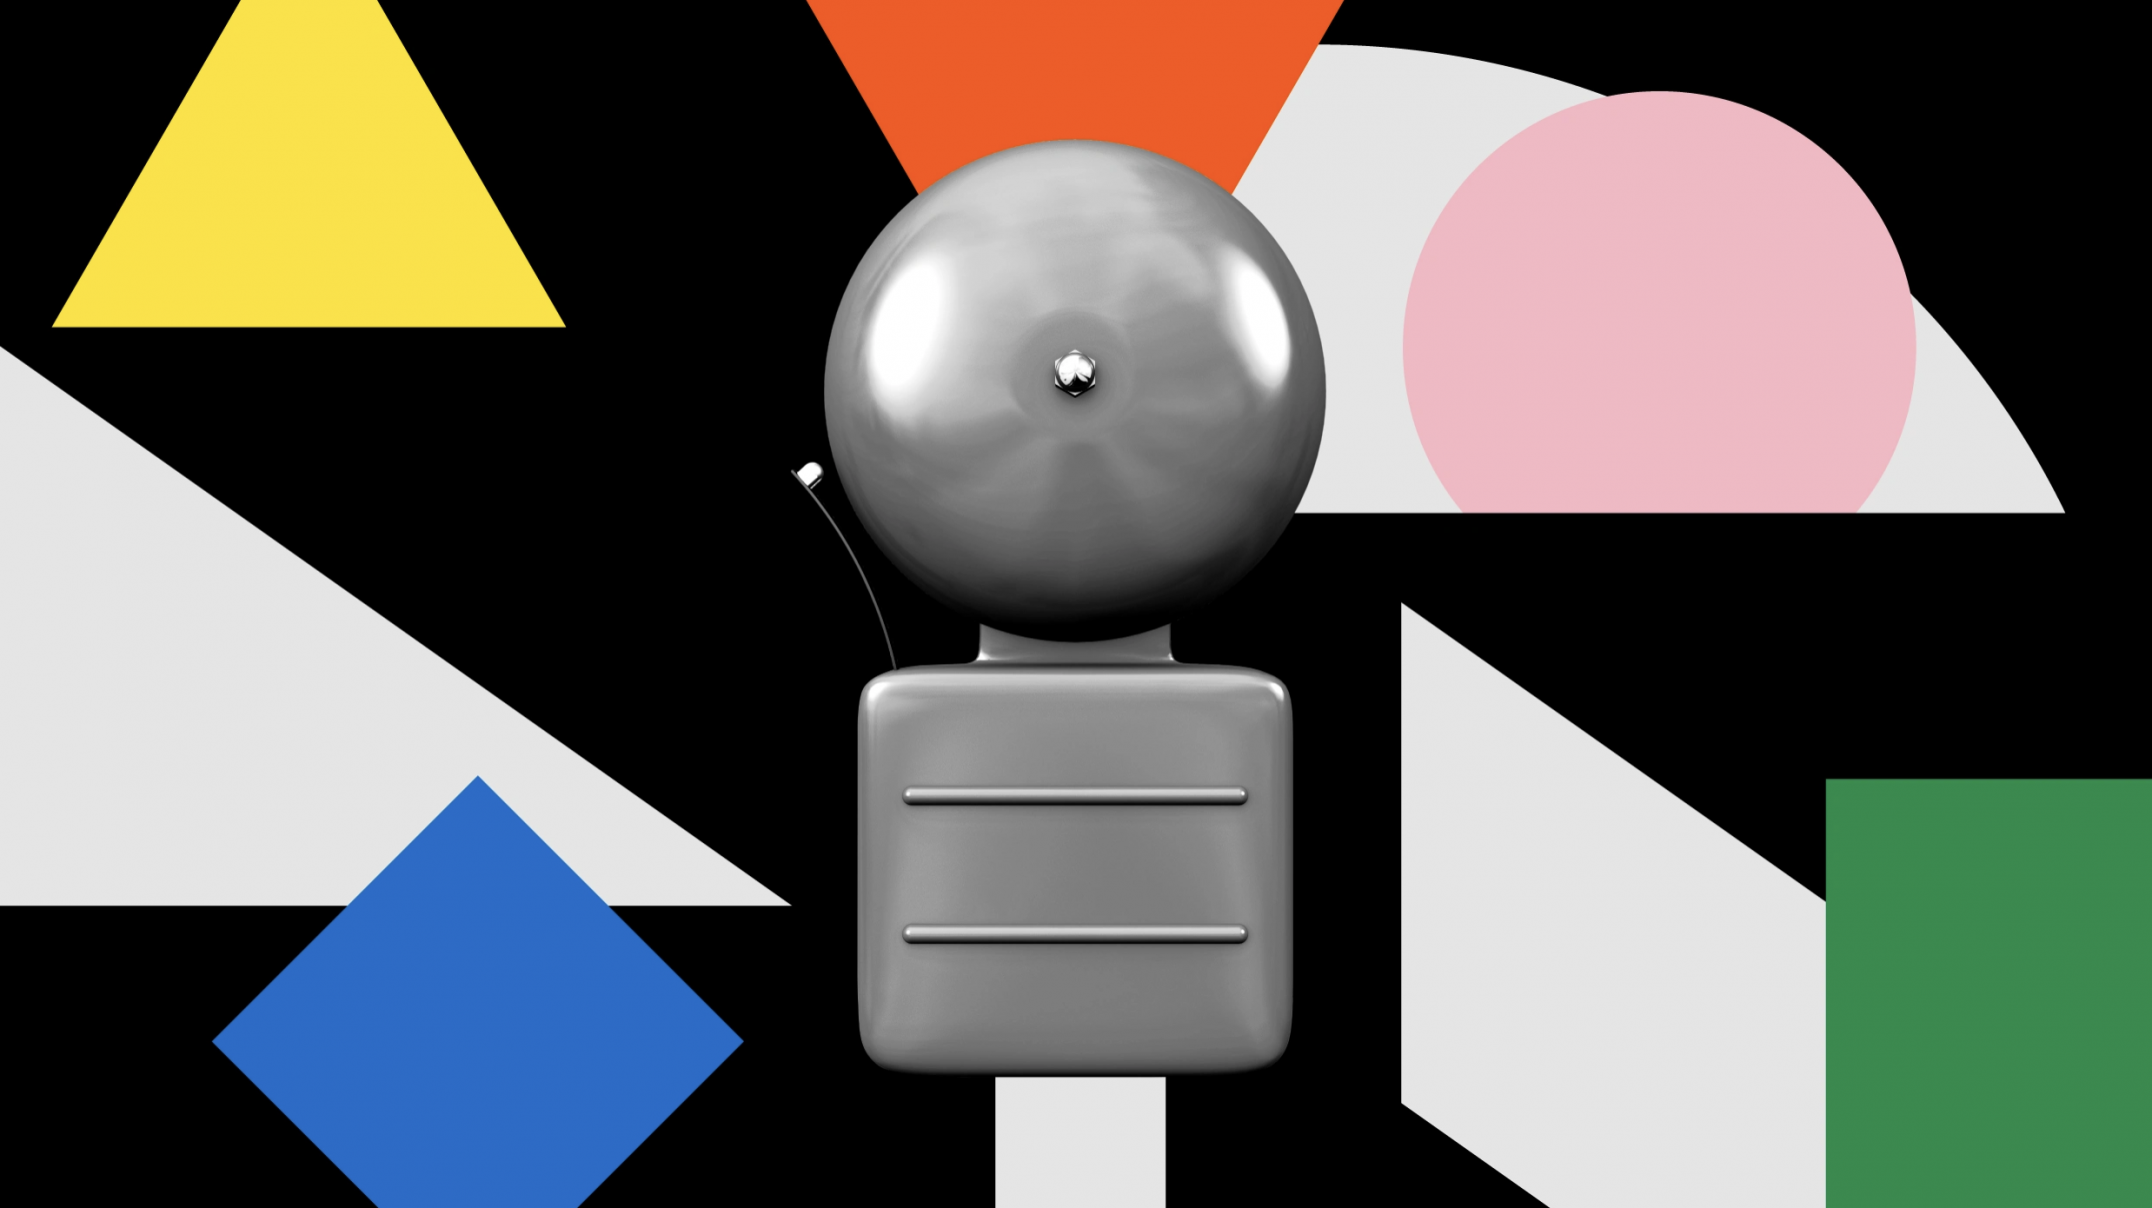 gray 3D alarm bell in the center of a collage of black, white and brightly colored shapes